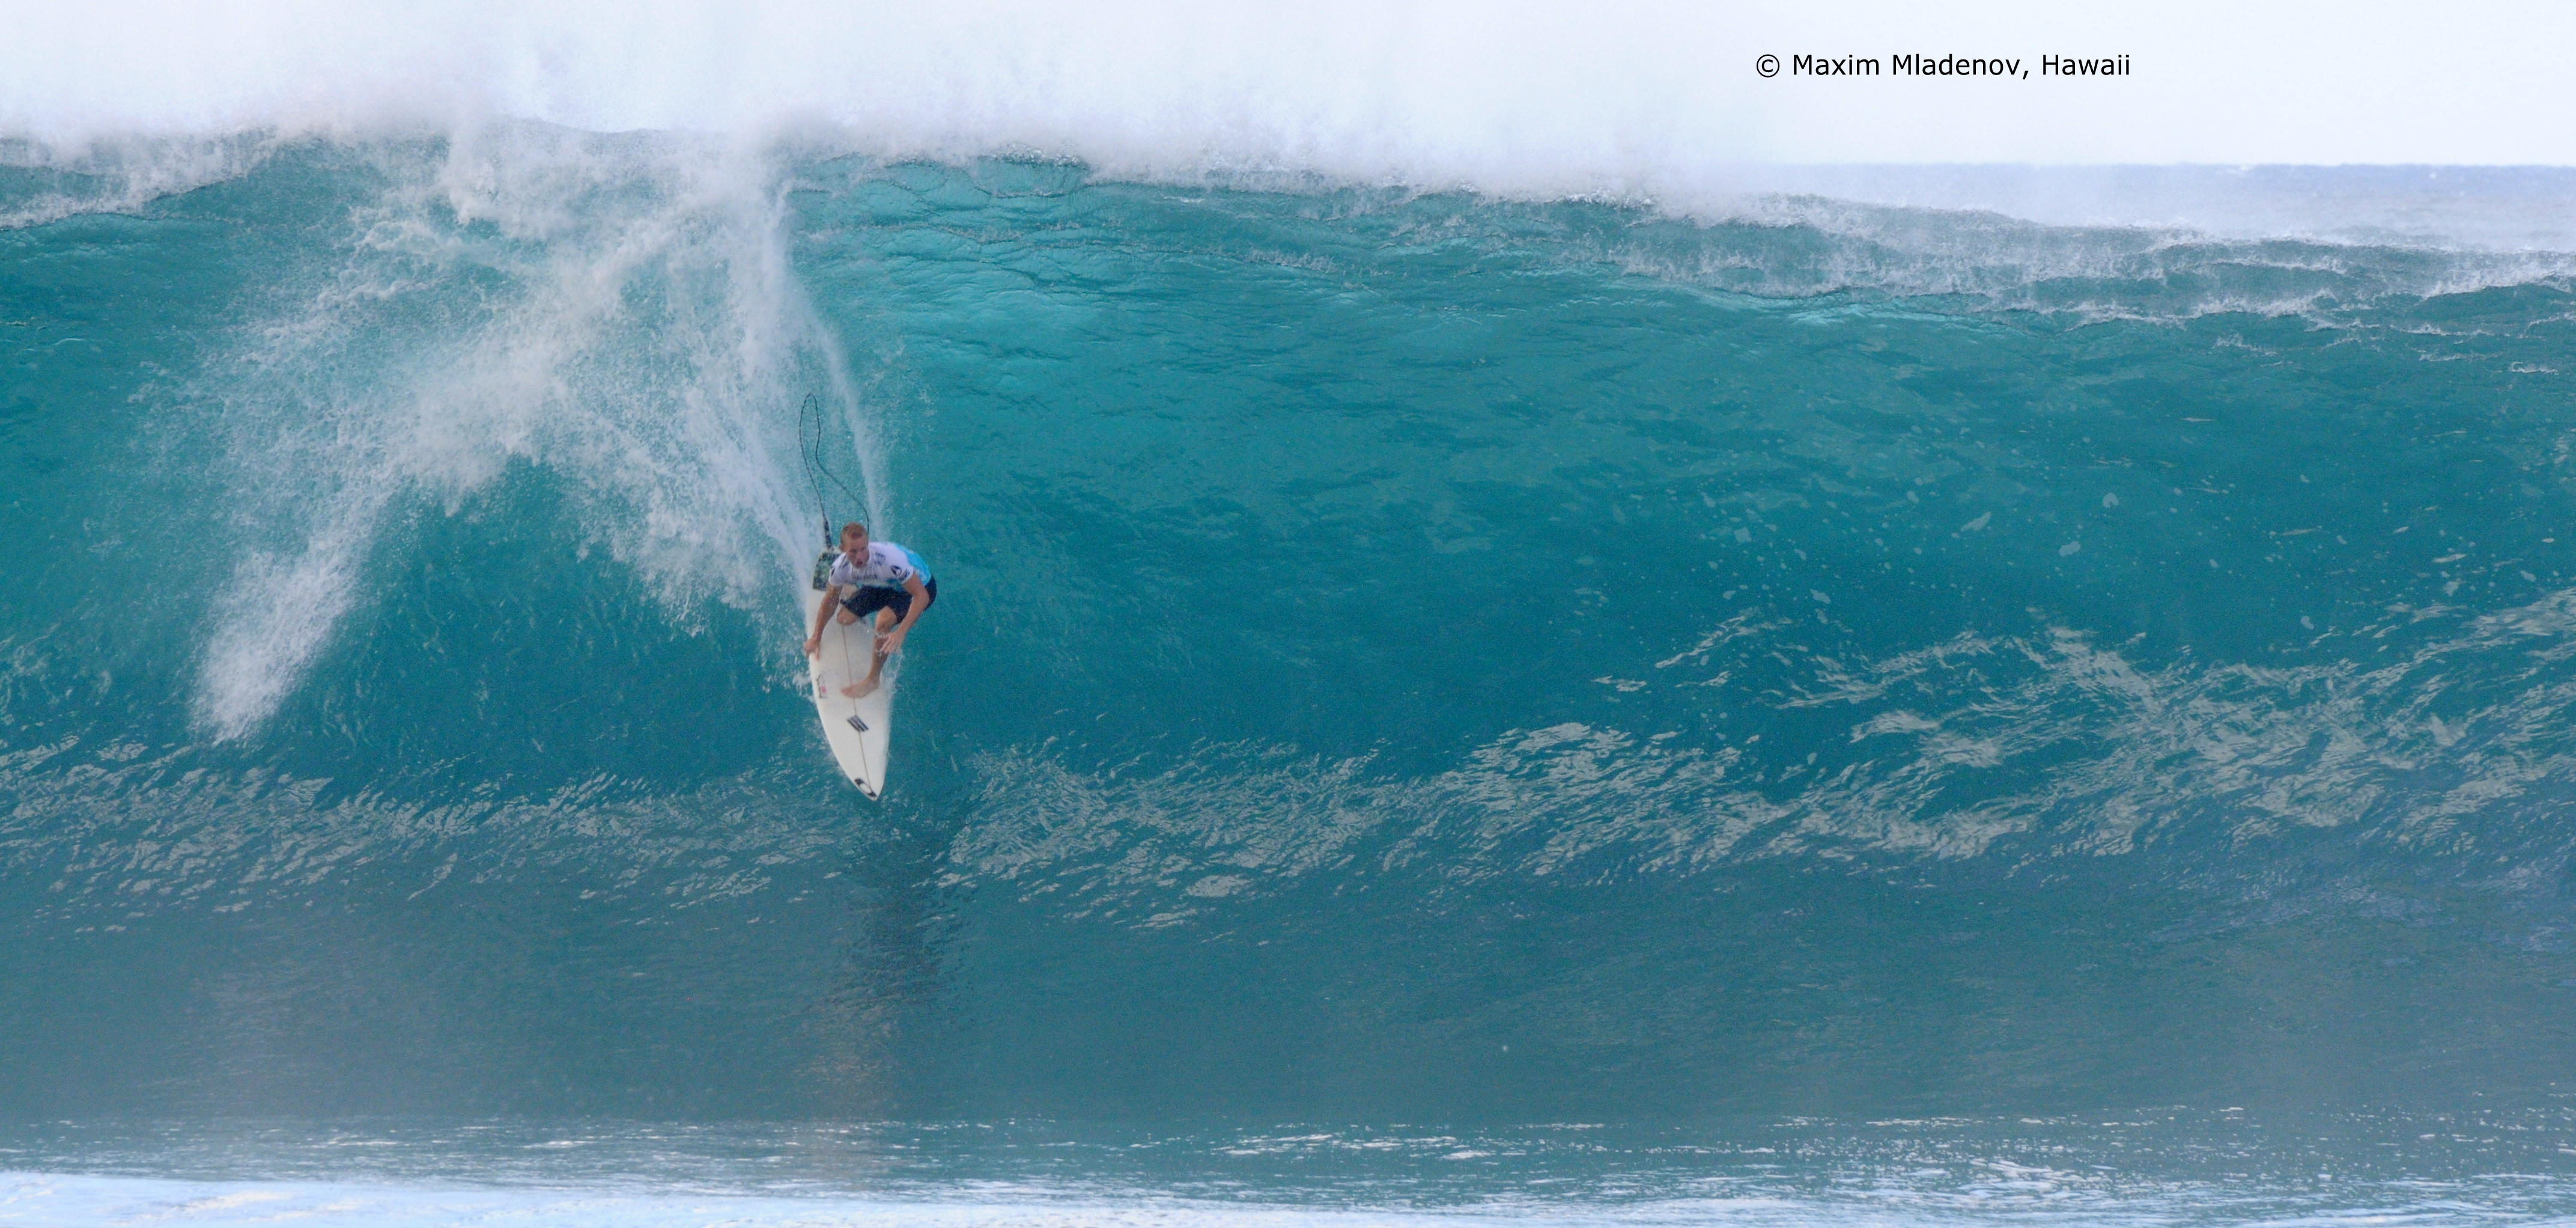 Sans commentaires - 1er Tour 08-12-2011 Billabong PIPE Masters © Maxim Mladenov, Hawaii